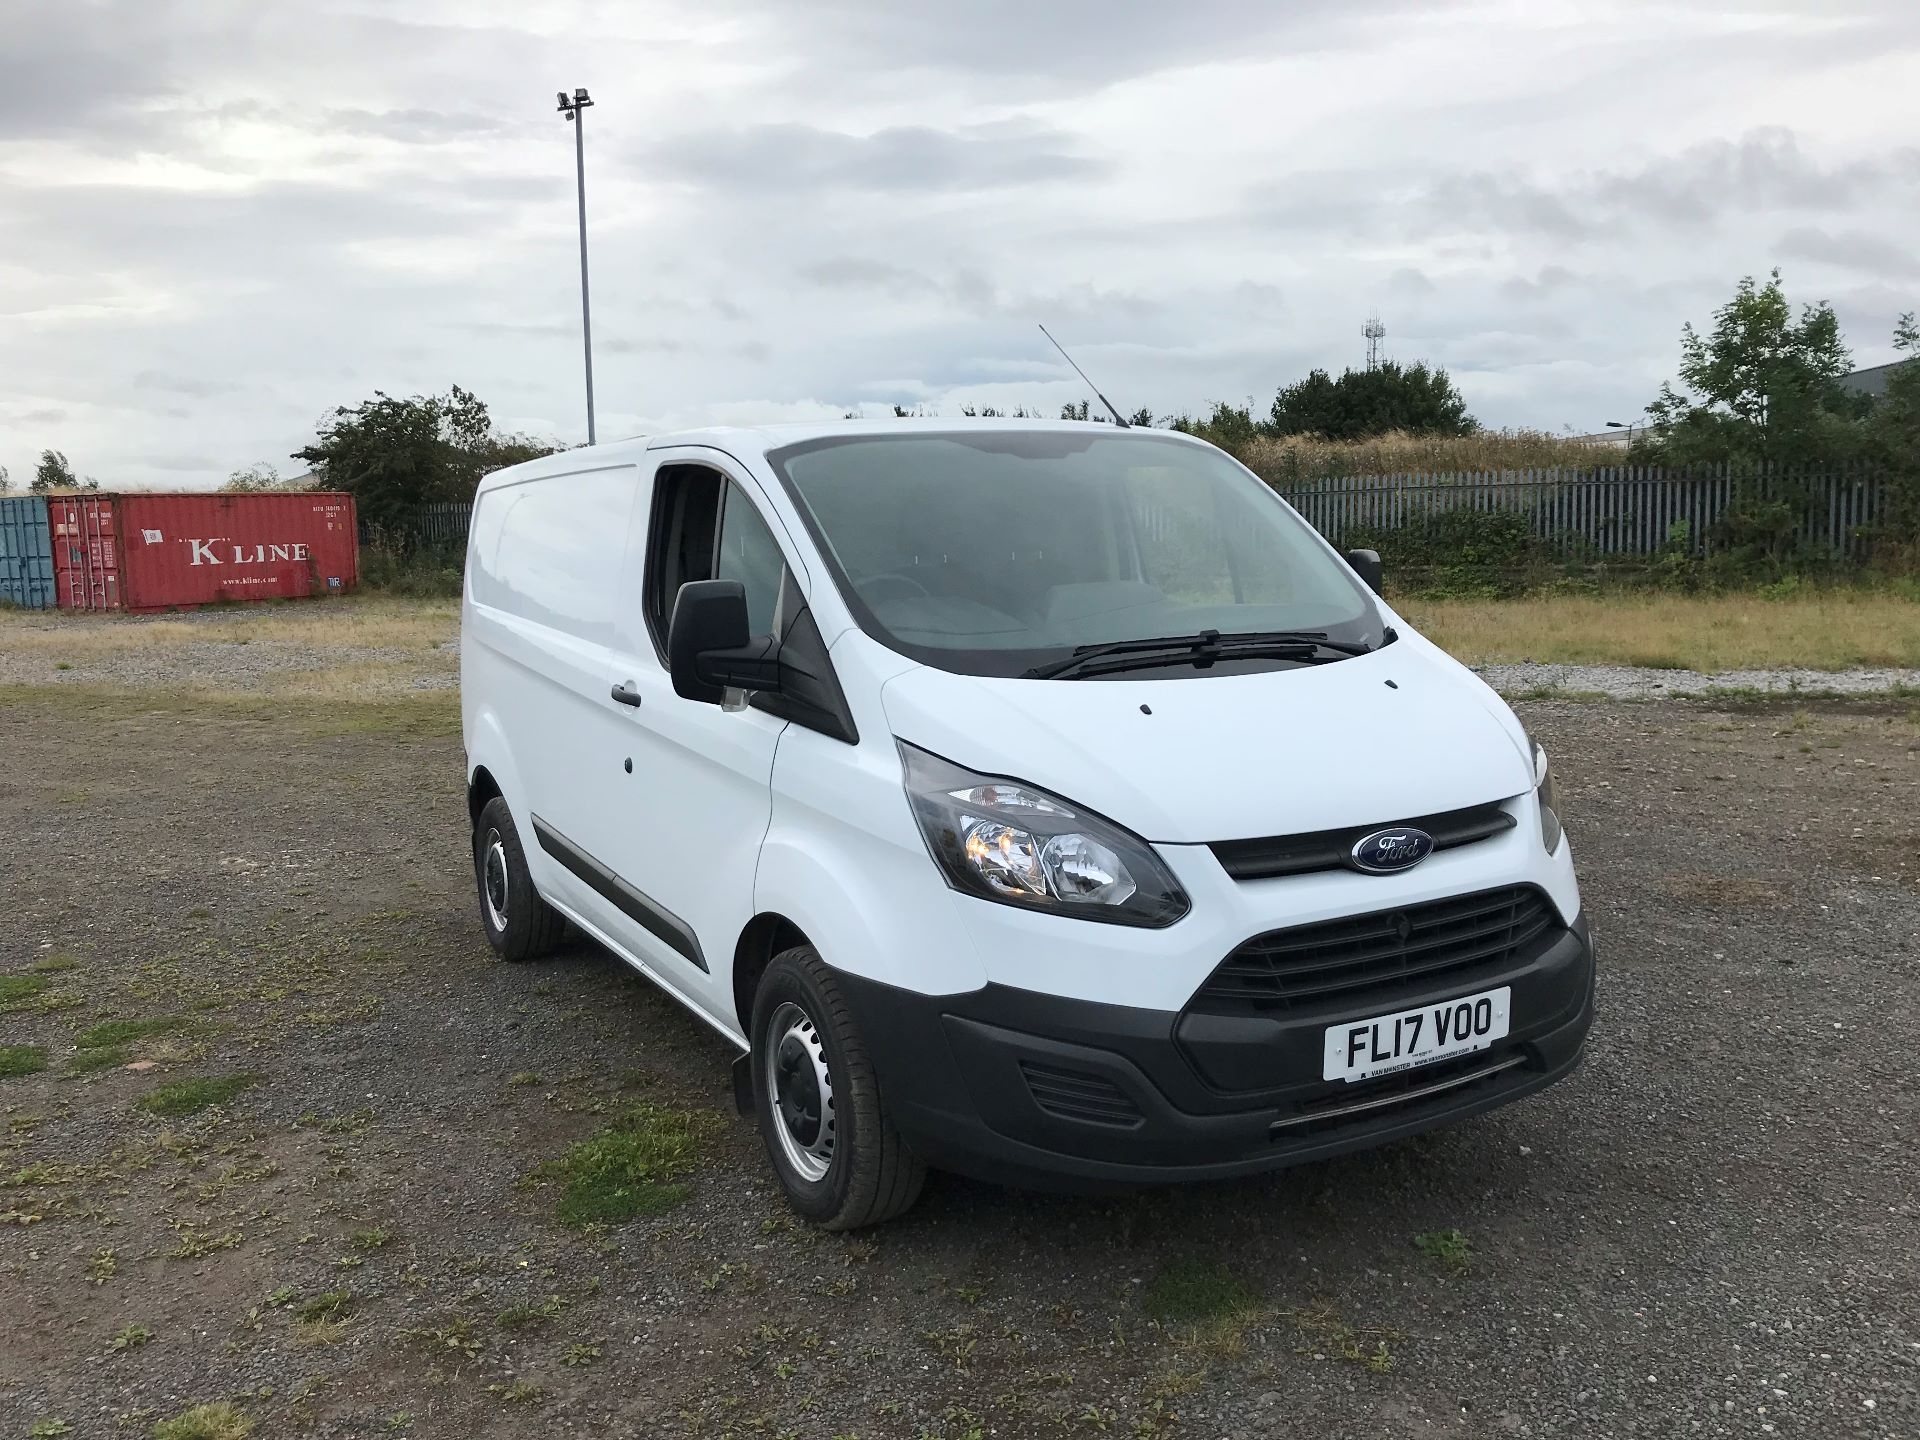 2017 Ford Transit Custom 2.0 Tdci 105Ps Low Roof Van (FL17VOO)